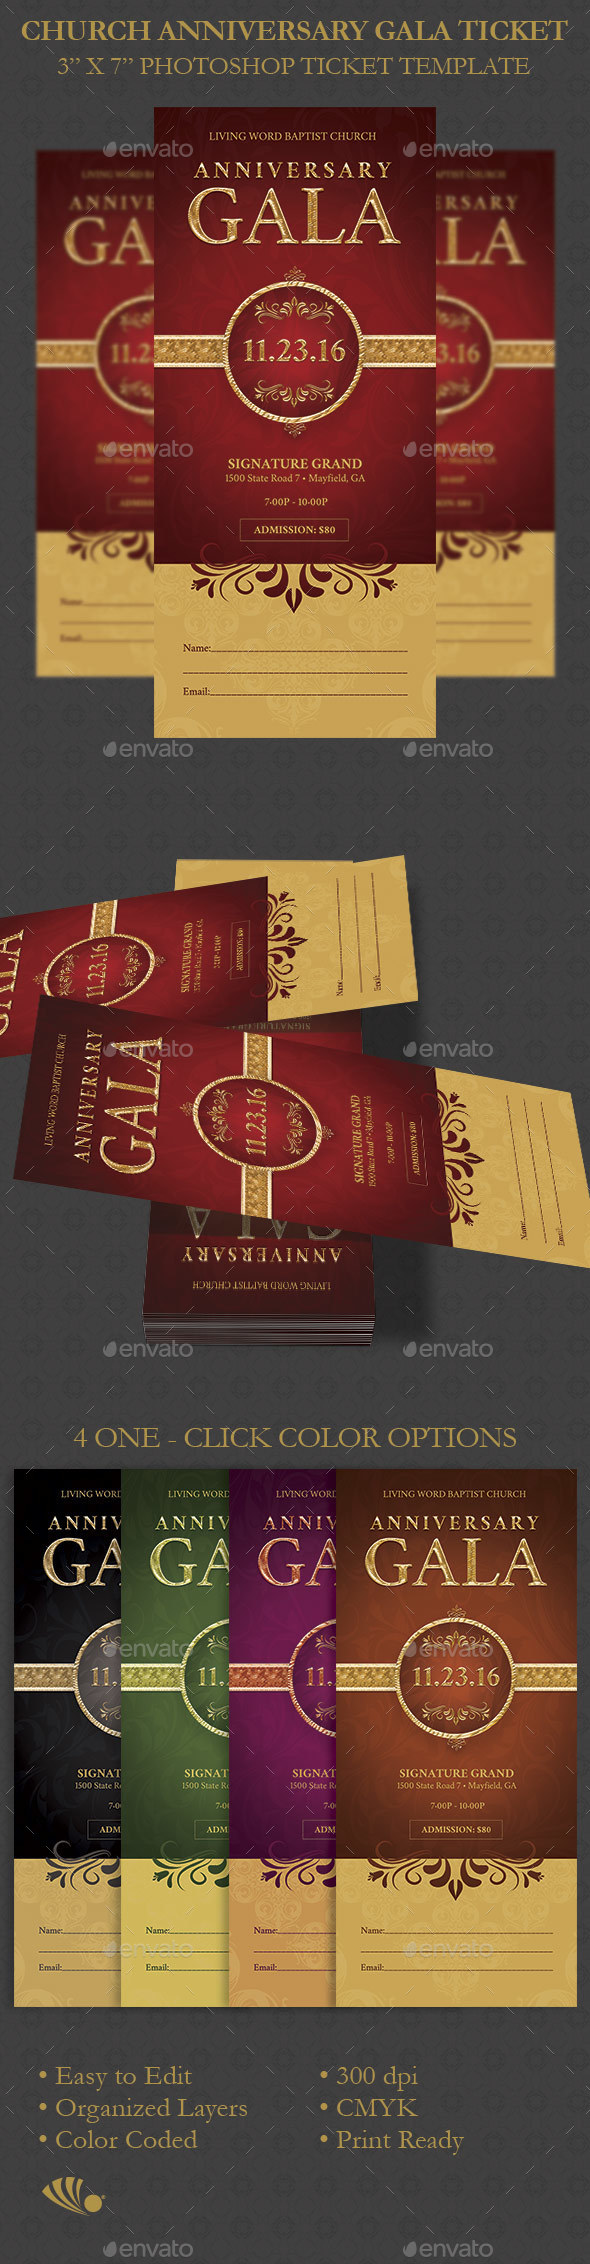 Church Anniversary Gala Ticket - Miscellaneous Print Templates